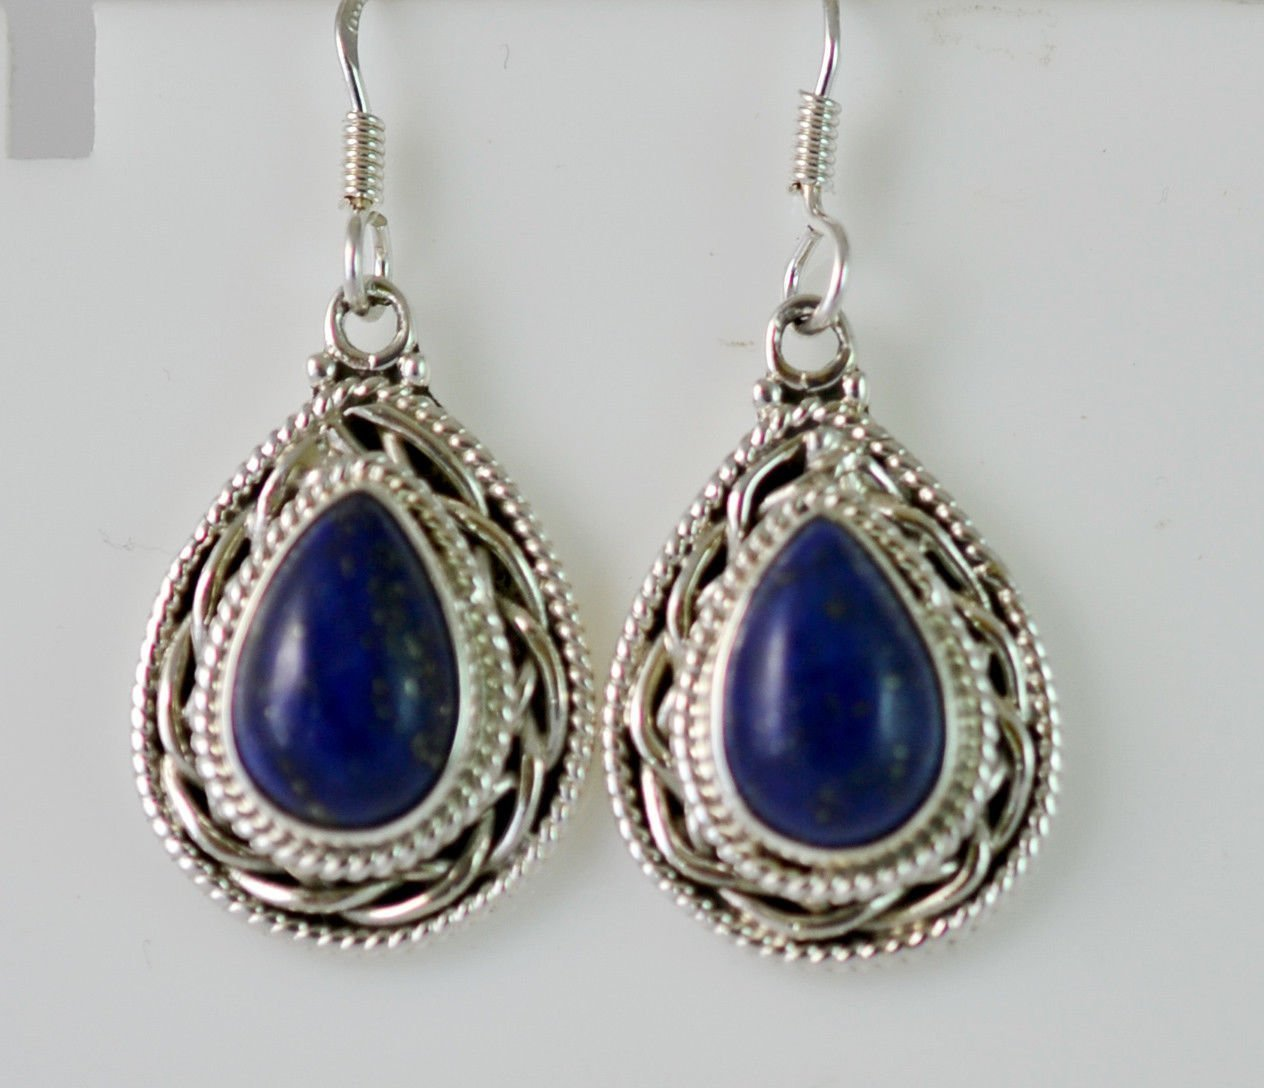 Lapis Lazuli Silver Earrings 925 Solid Sterling Silver Handmade Jewelry